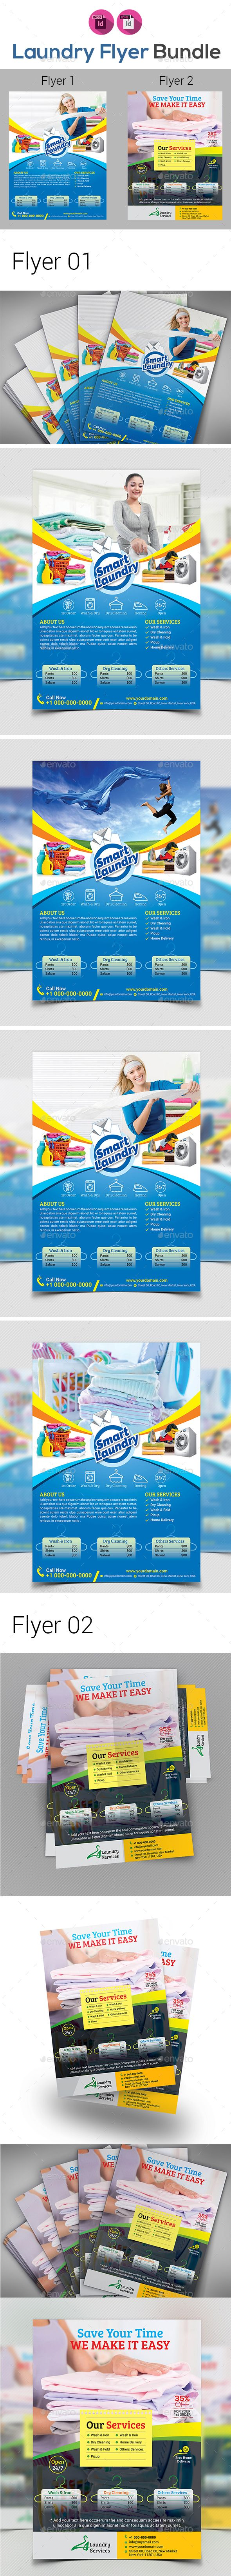 Laundry & Dry Cleaning Services #Flyer - Commerce Flyers Download here: https://graphicriver.net/item/laundry-dry-cleaning-services-flyer/19753050?ref=alena994